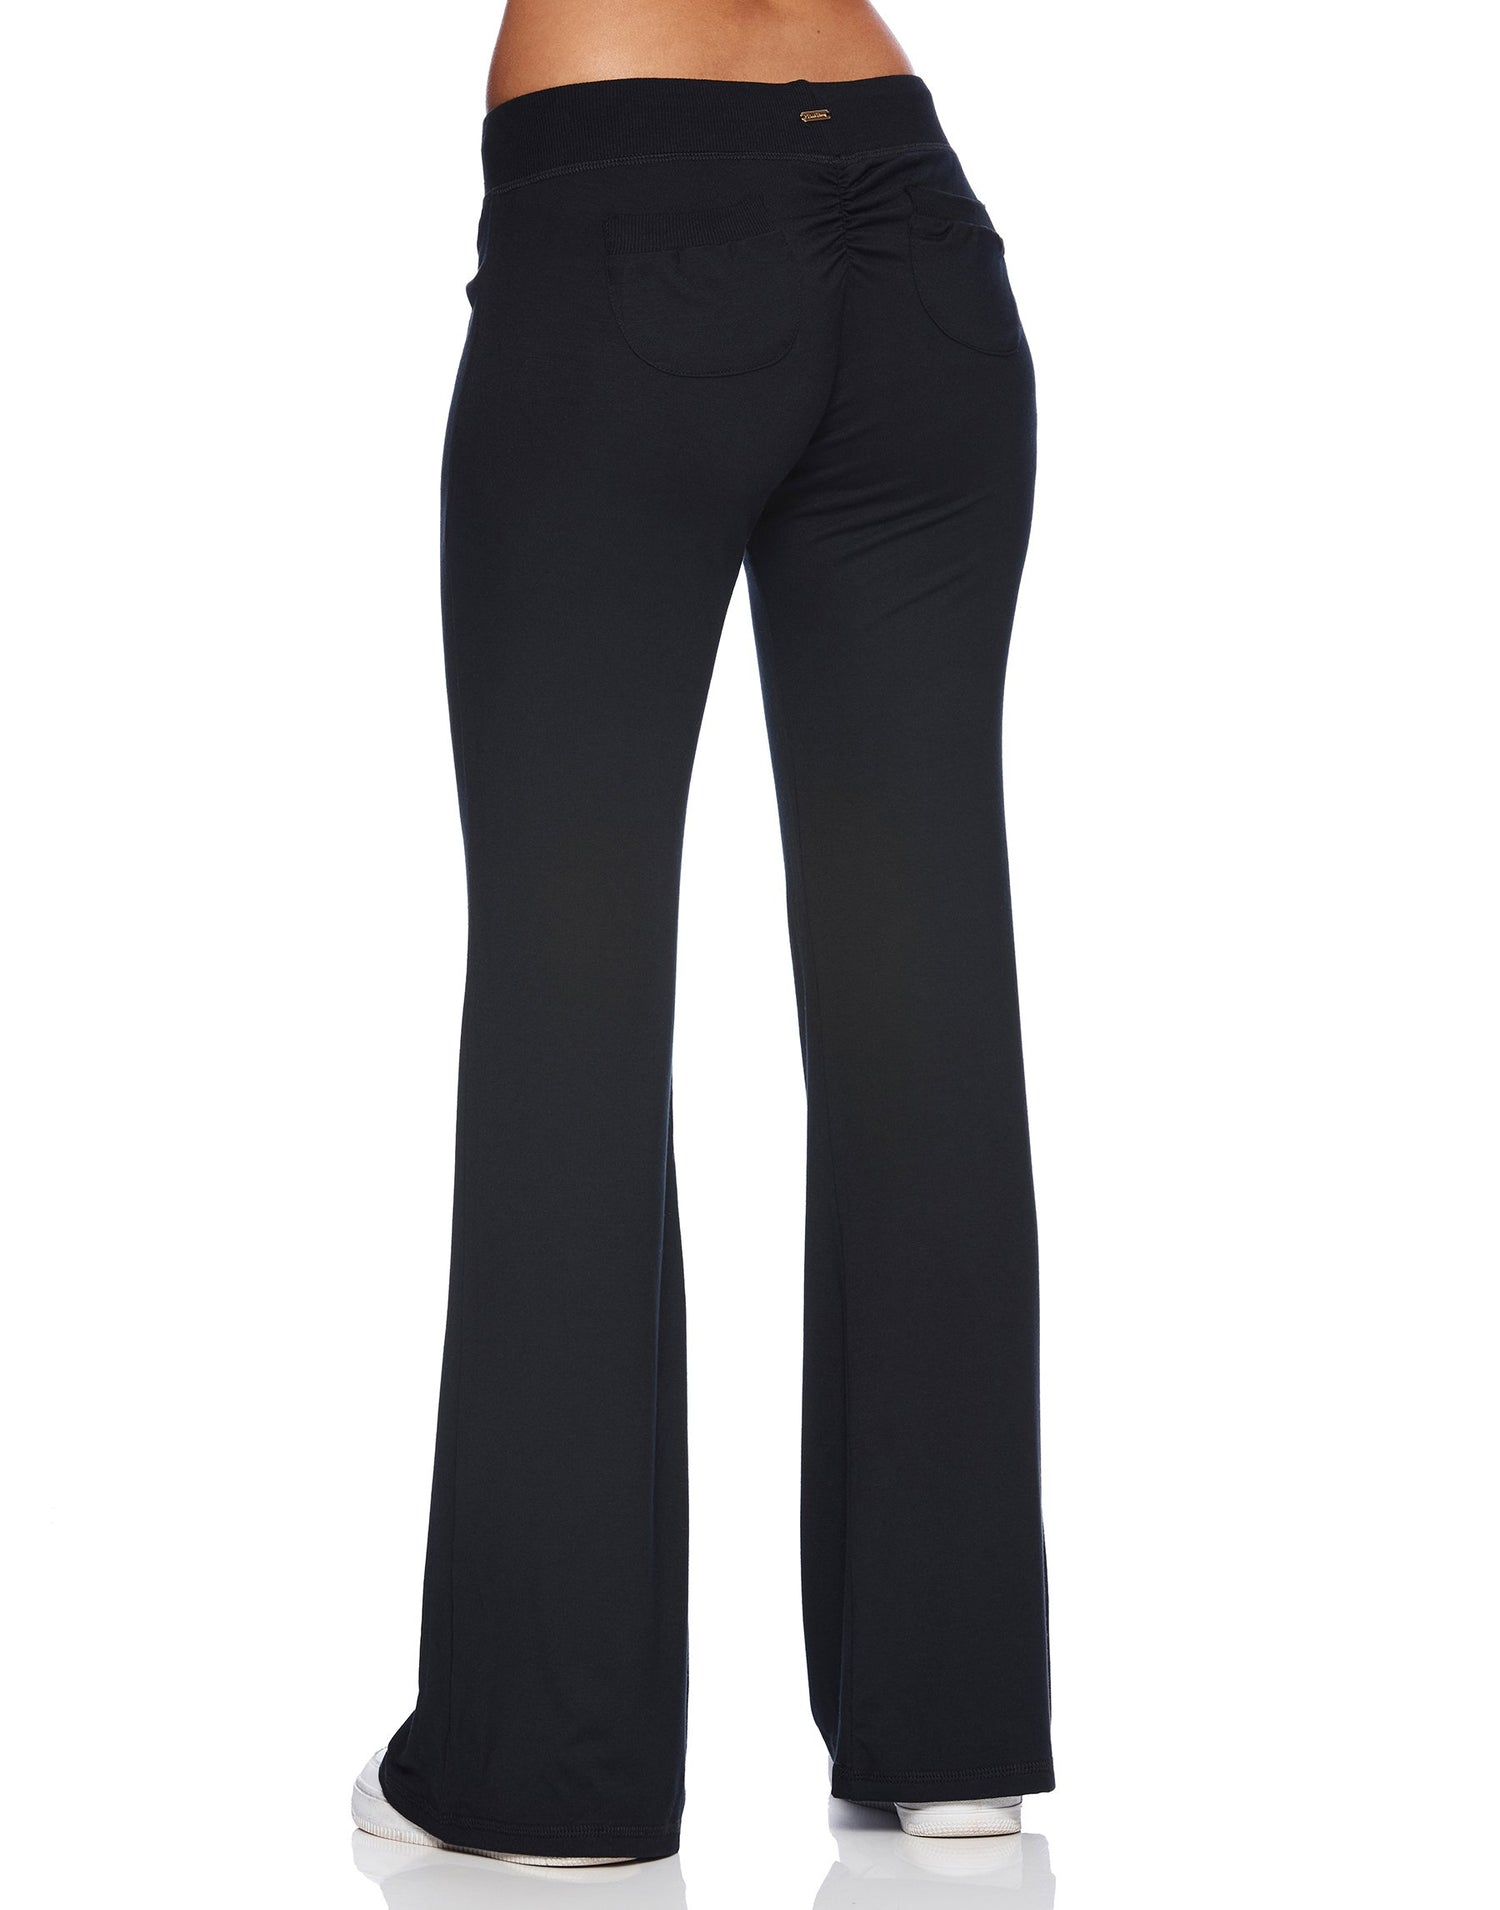 Maggie Pant in Black - back view